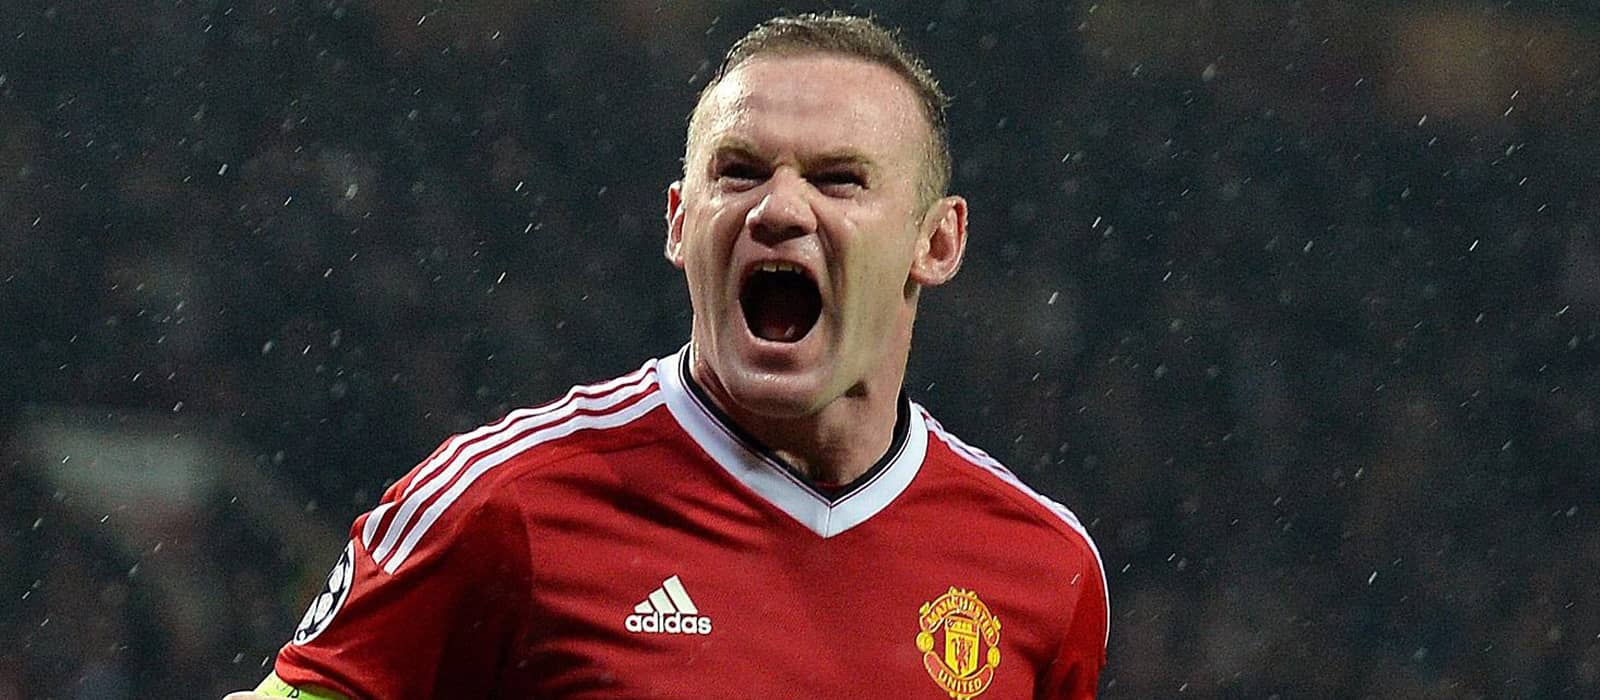 Wayne Rooney insists his overhead kick was better than Cristiano Ronaldo's recent effort